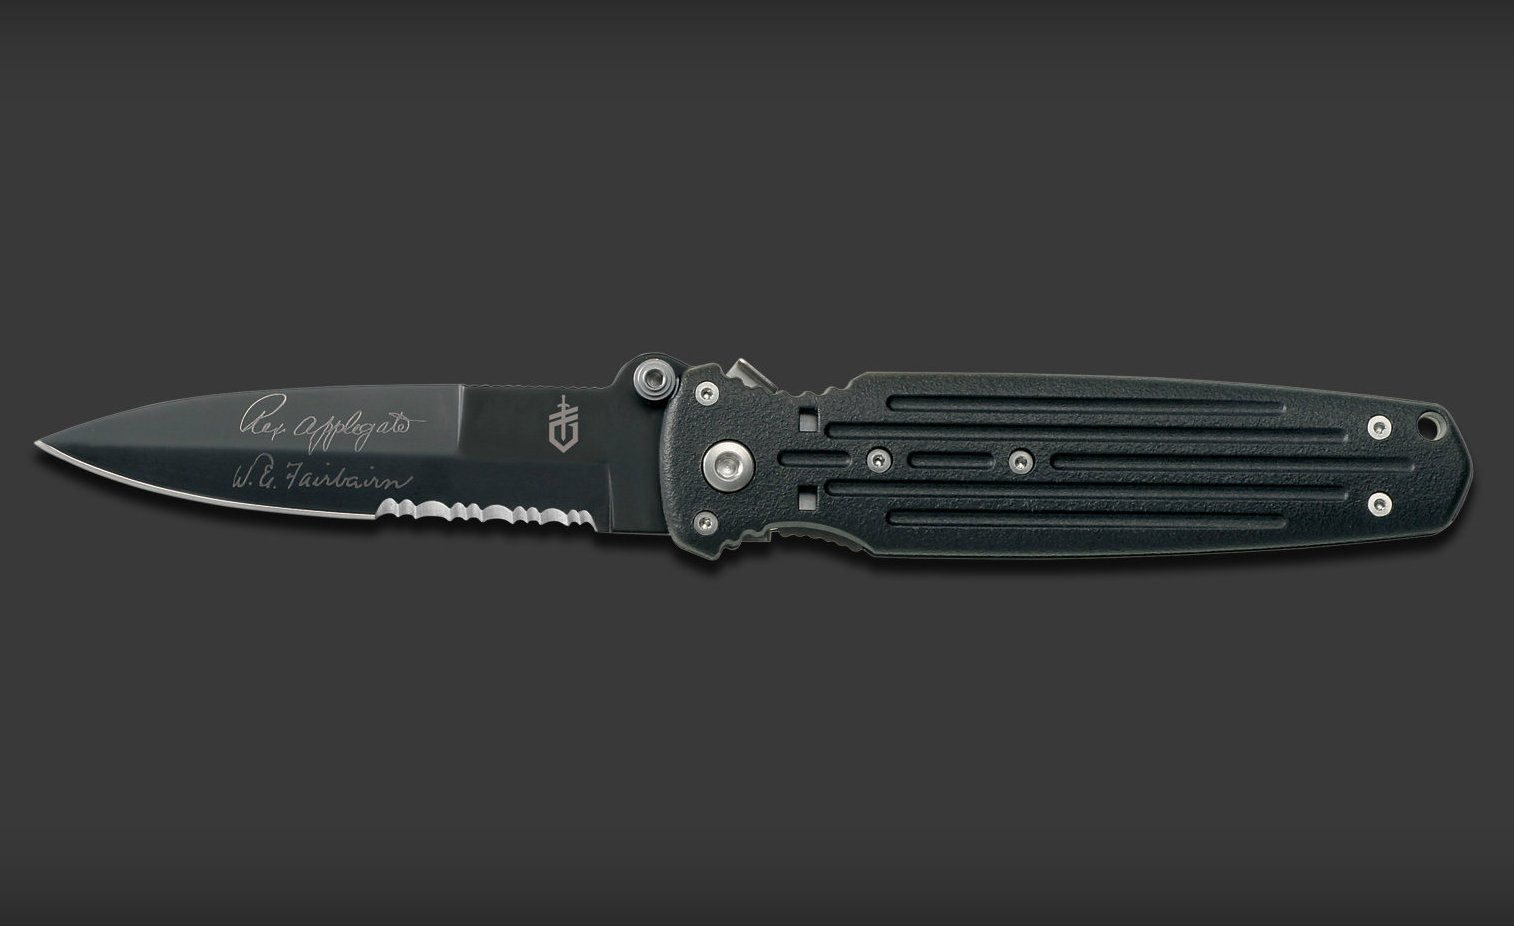 Covert Double Bevel Serrated Tactical Knife